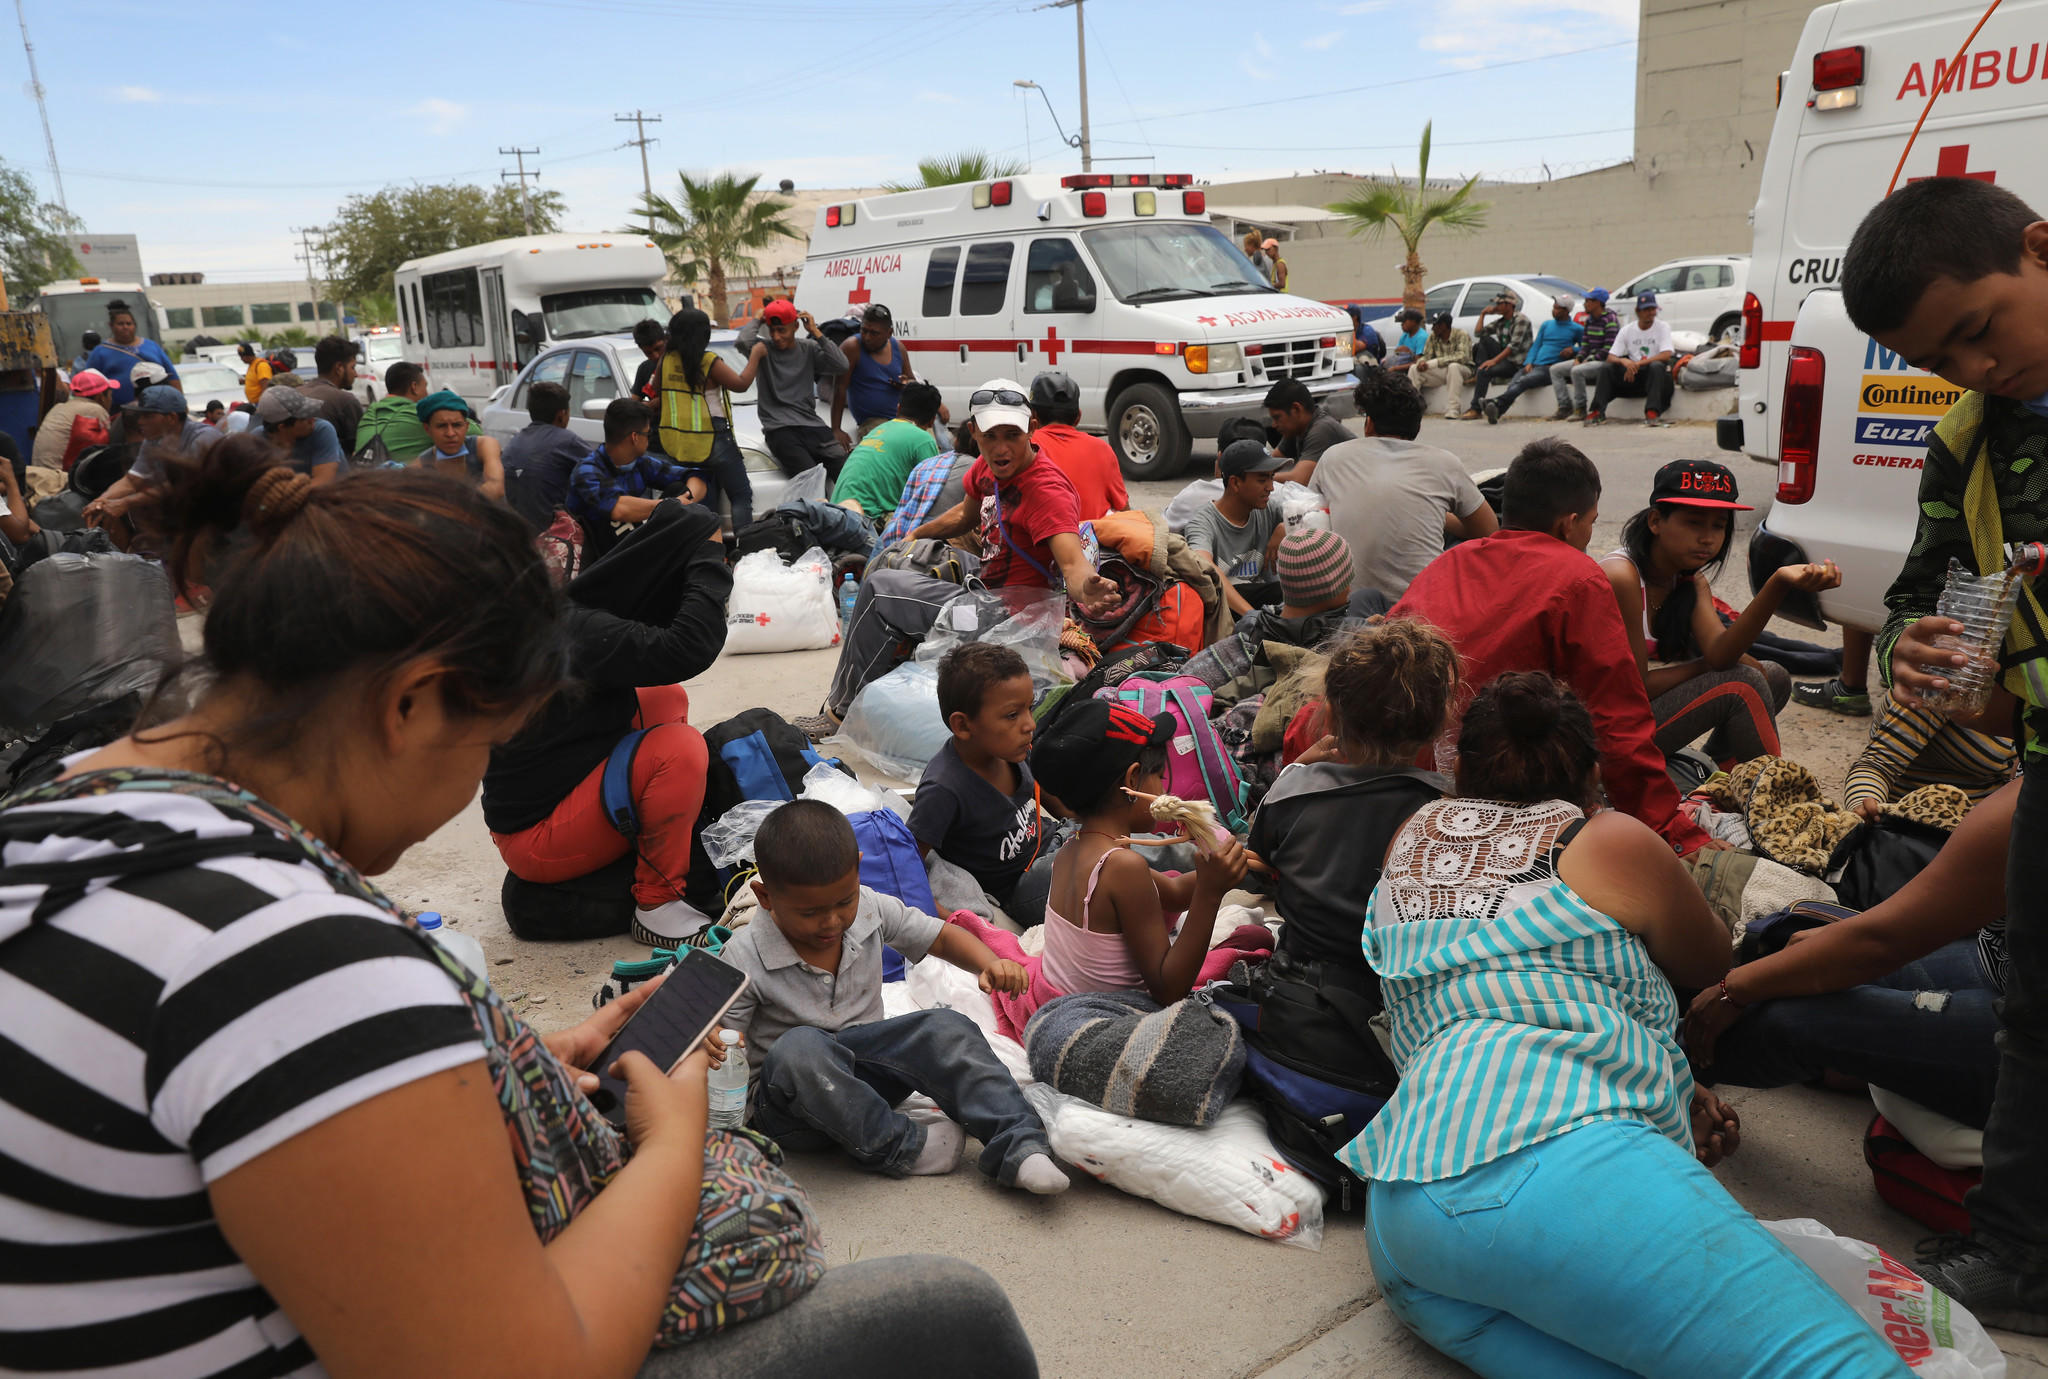 Caravan Arrives In Tijuana, As Migrants Prepare To Request Asylum